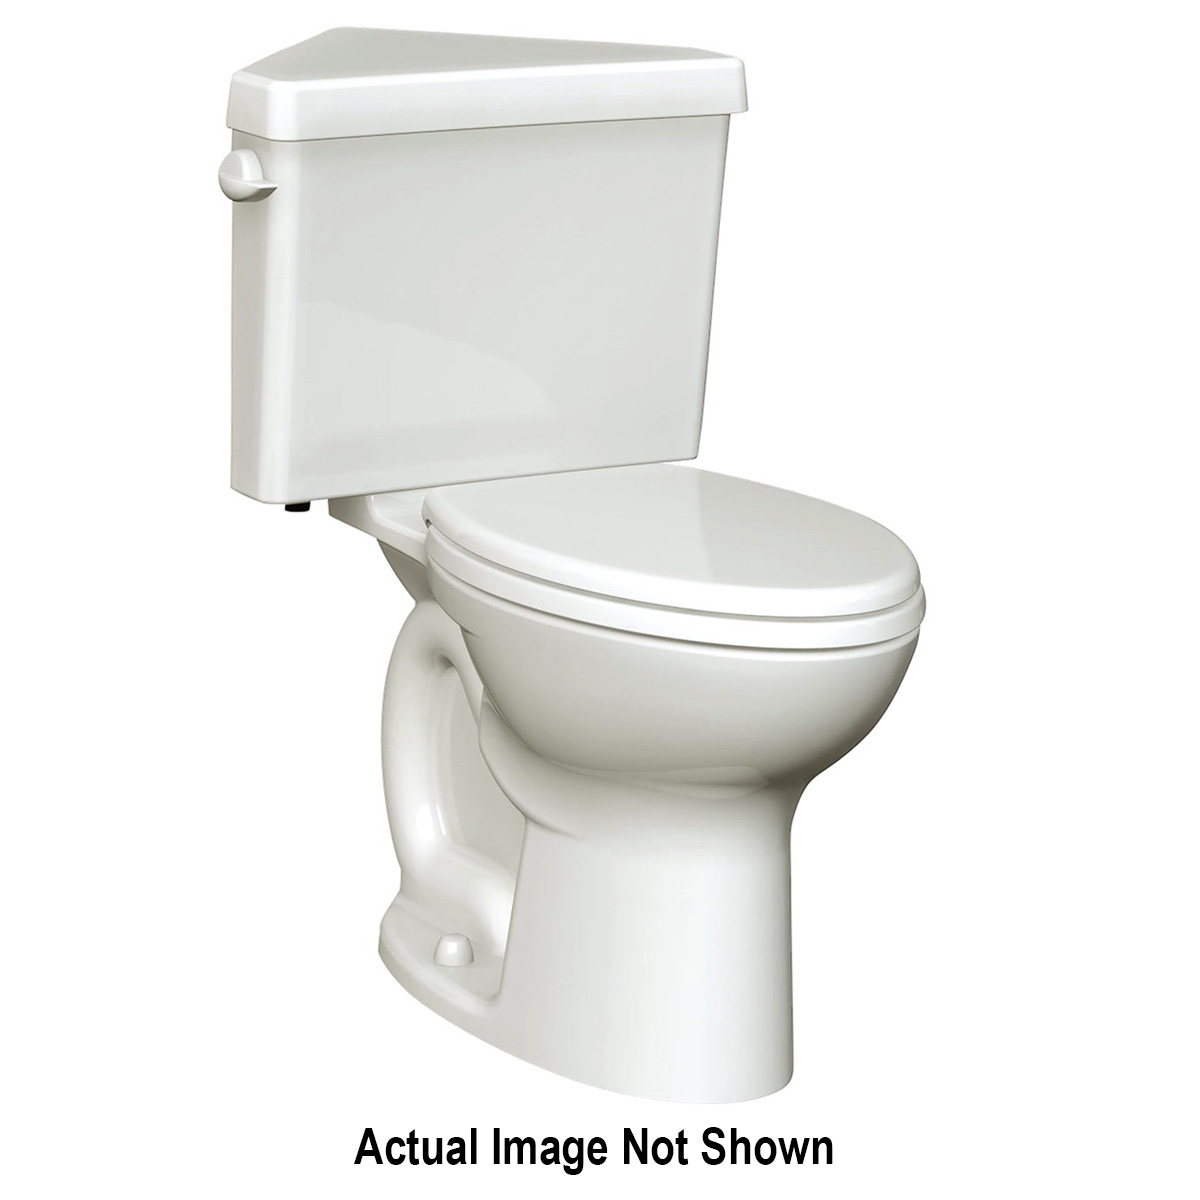 American Standard 3517A101.021 Cadet® Pro™ Right Height™ Toilet Bowl, Elongated, 8 x 9 in Water Surface, 16-1/2 in H Rim, 2-1/8 in Trapway, Import